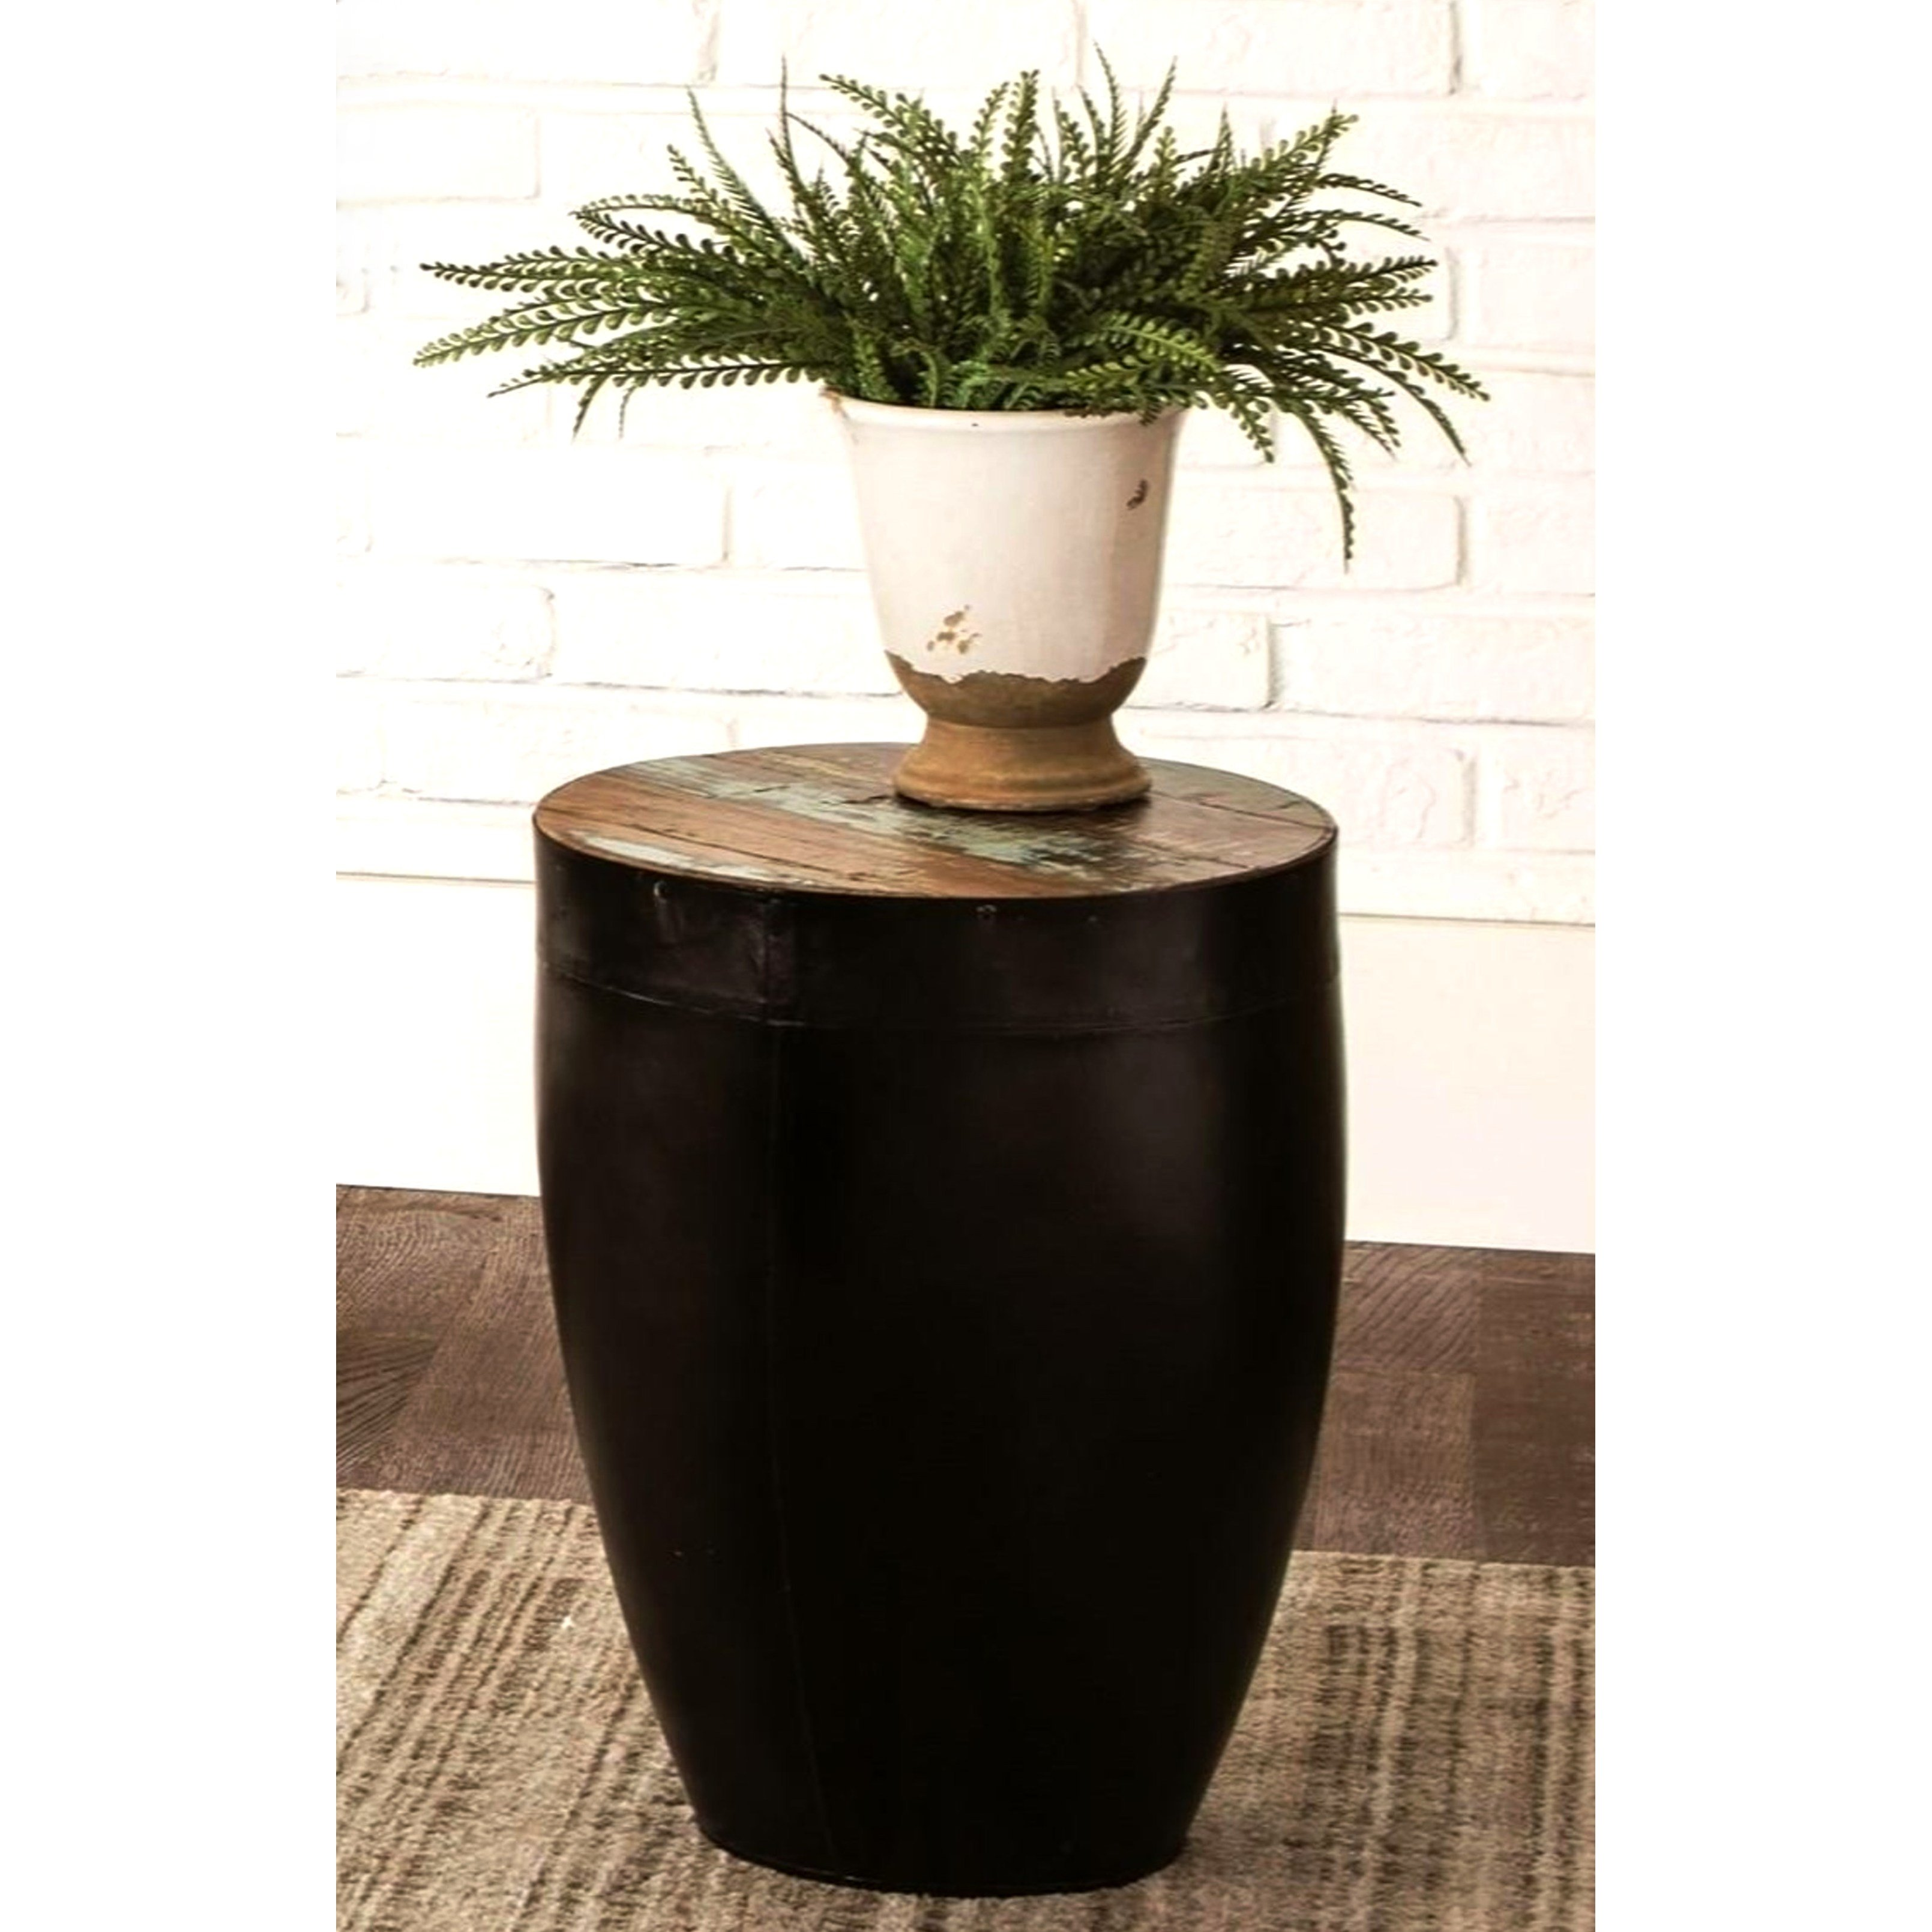 black iron drum shaped accent side table with natural reclaimed wood top free shipping today tables edmonton slim storage unit ikea nate berkus bath rug nightstand bedside ott